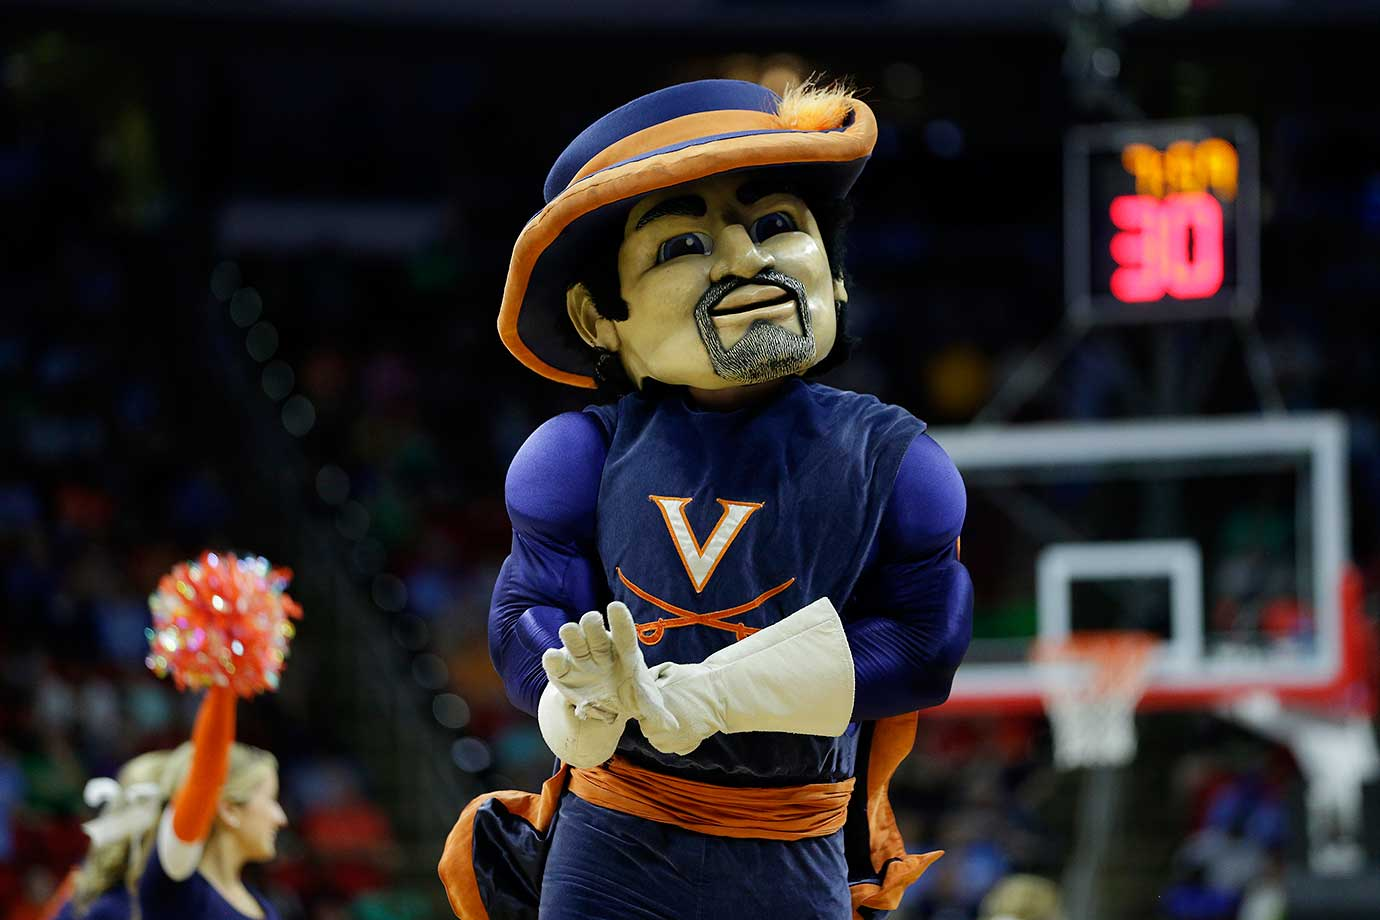 No. 2: During football season, Virginia's mascot, CavMan, will ride onto the field on a horse while dressed in actual Cavalier clothing rather than in a suit, which he saves for basketball season. The orange and navy blue color scheme is sleek, his white gloves are classy and you never want to tangle with a mascot who can wield a sword. It is both historical and elegant. (Text credit: Andrew Wittrey/SI.com)